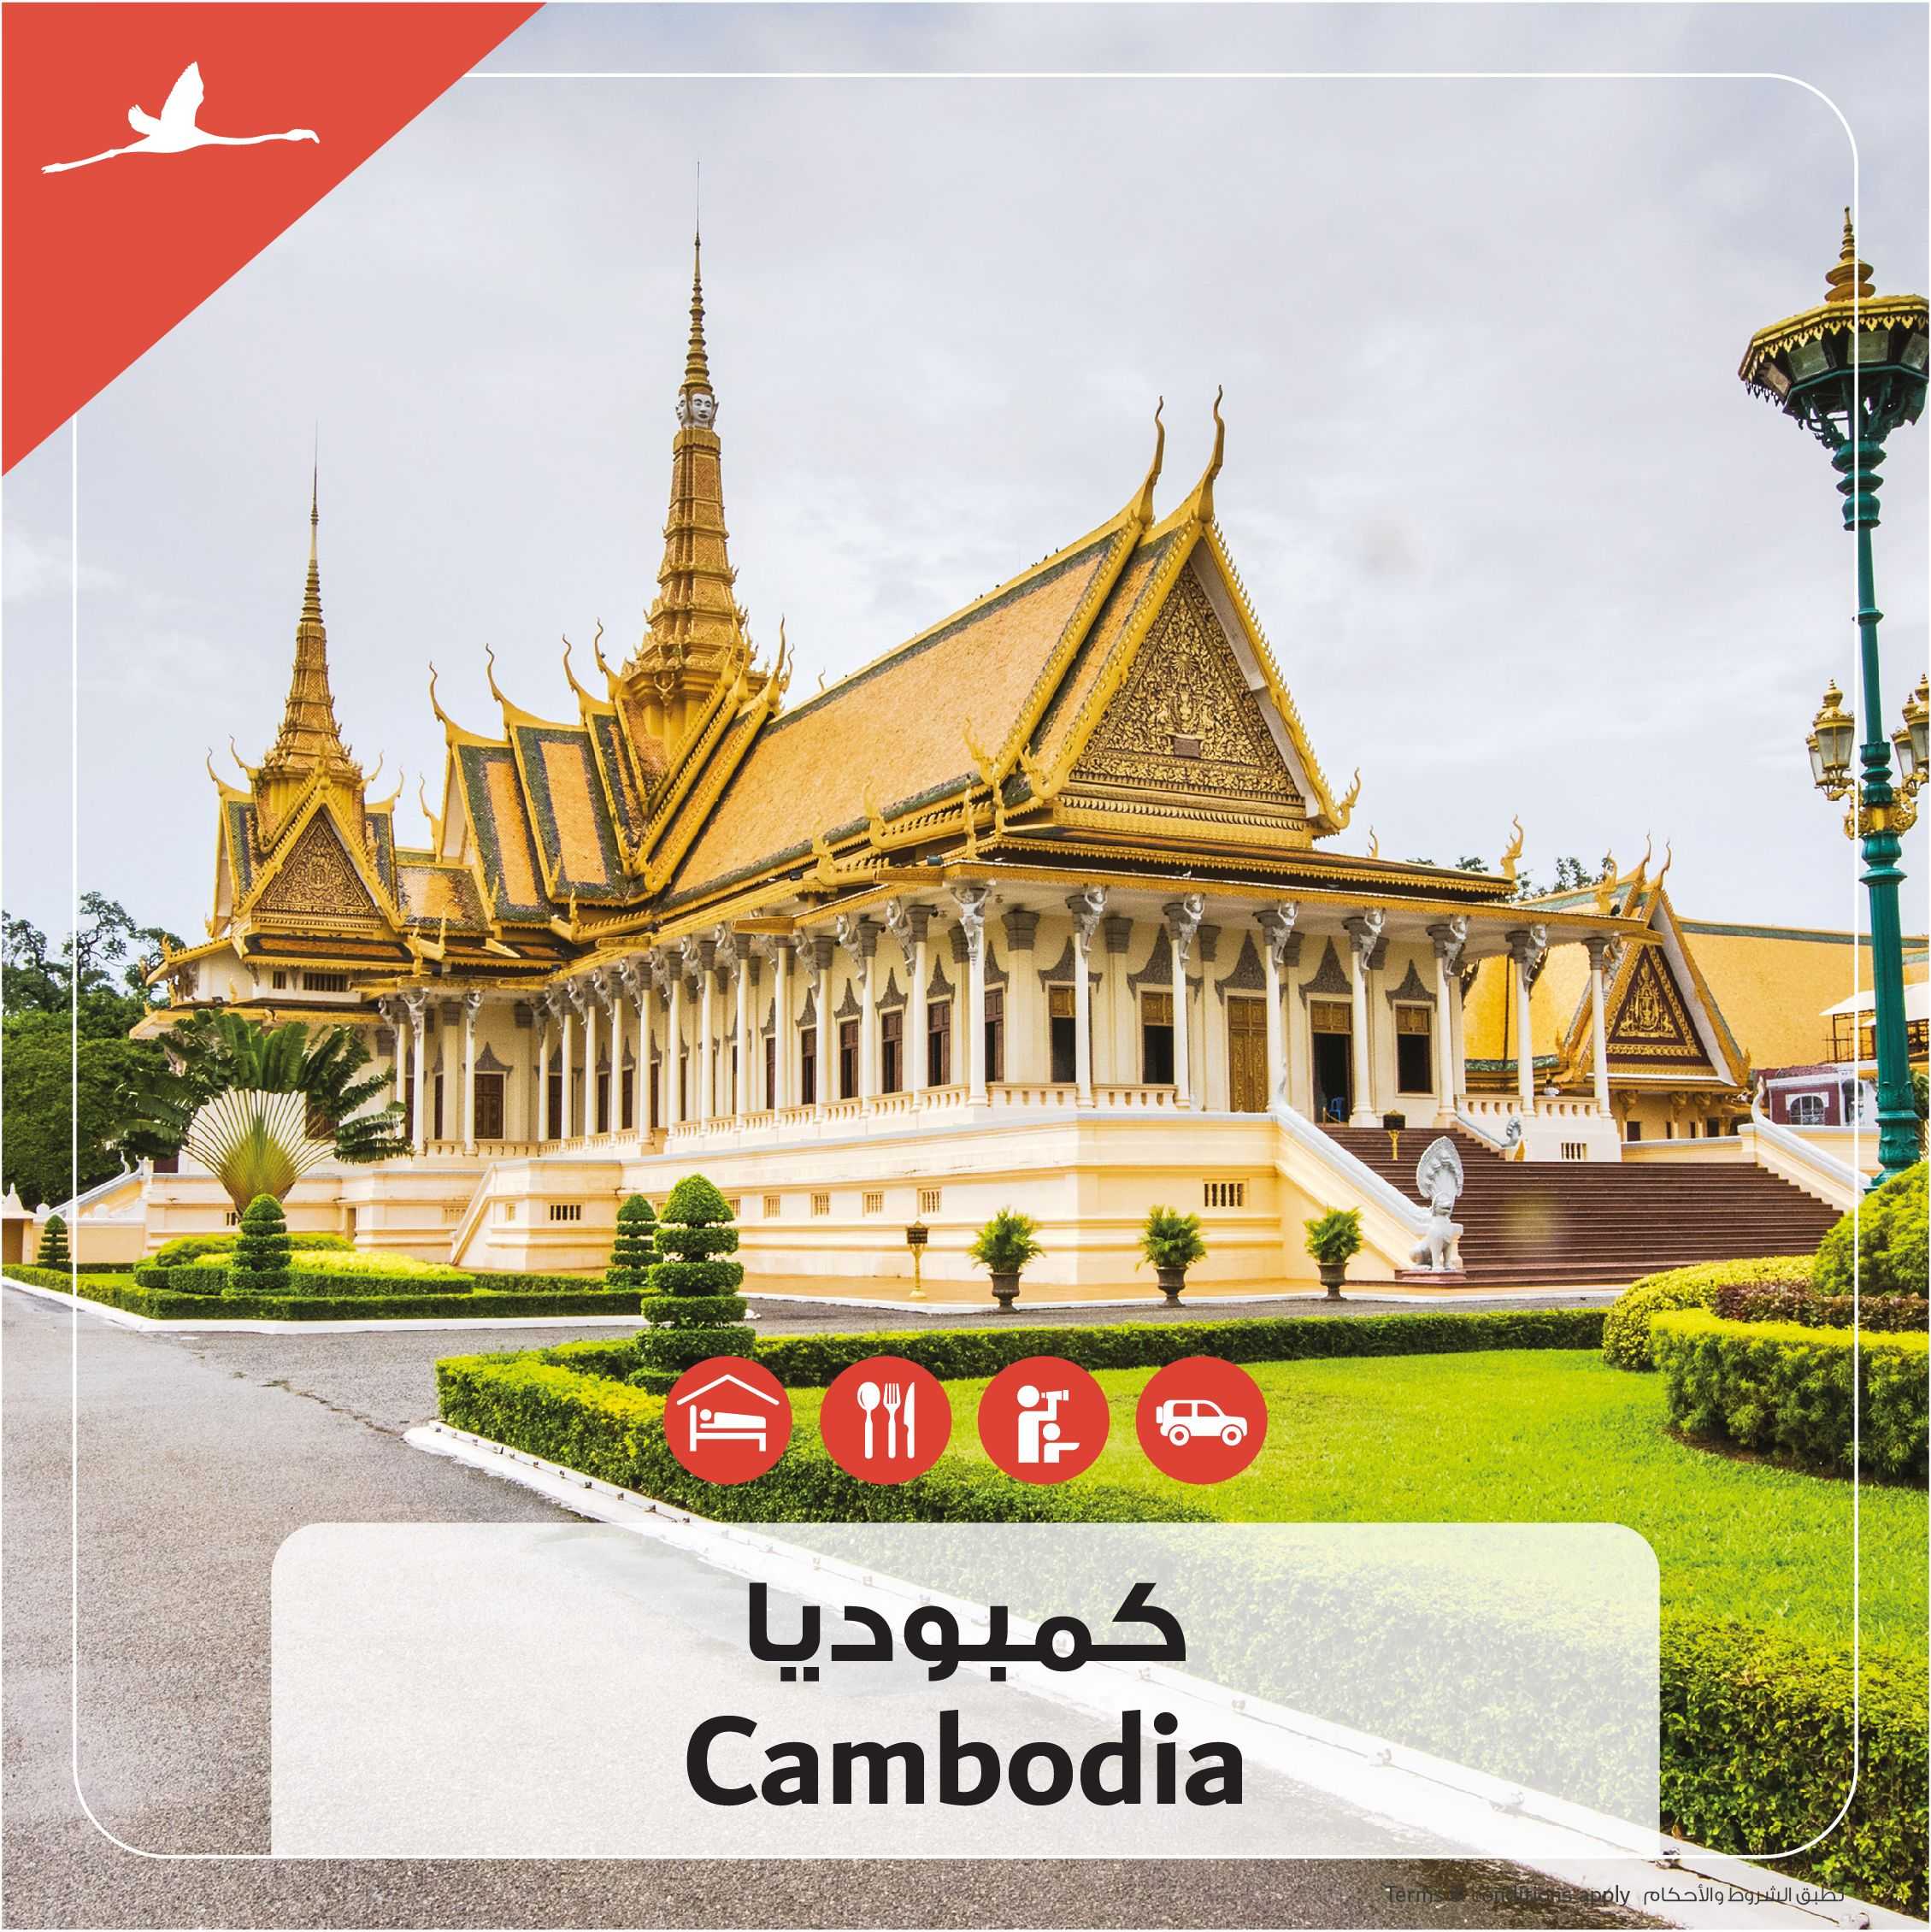 Best Of Holiday Deals Cambodia 7 Days From Sar  Omr  Qar  Pay From The Comfort Of Your Home Via The Most